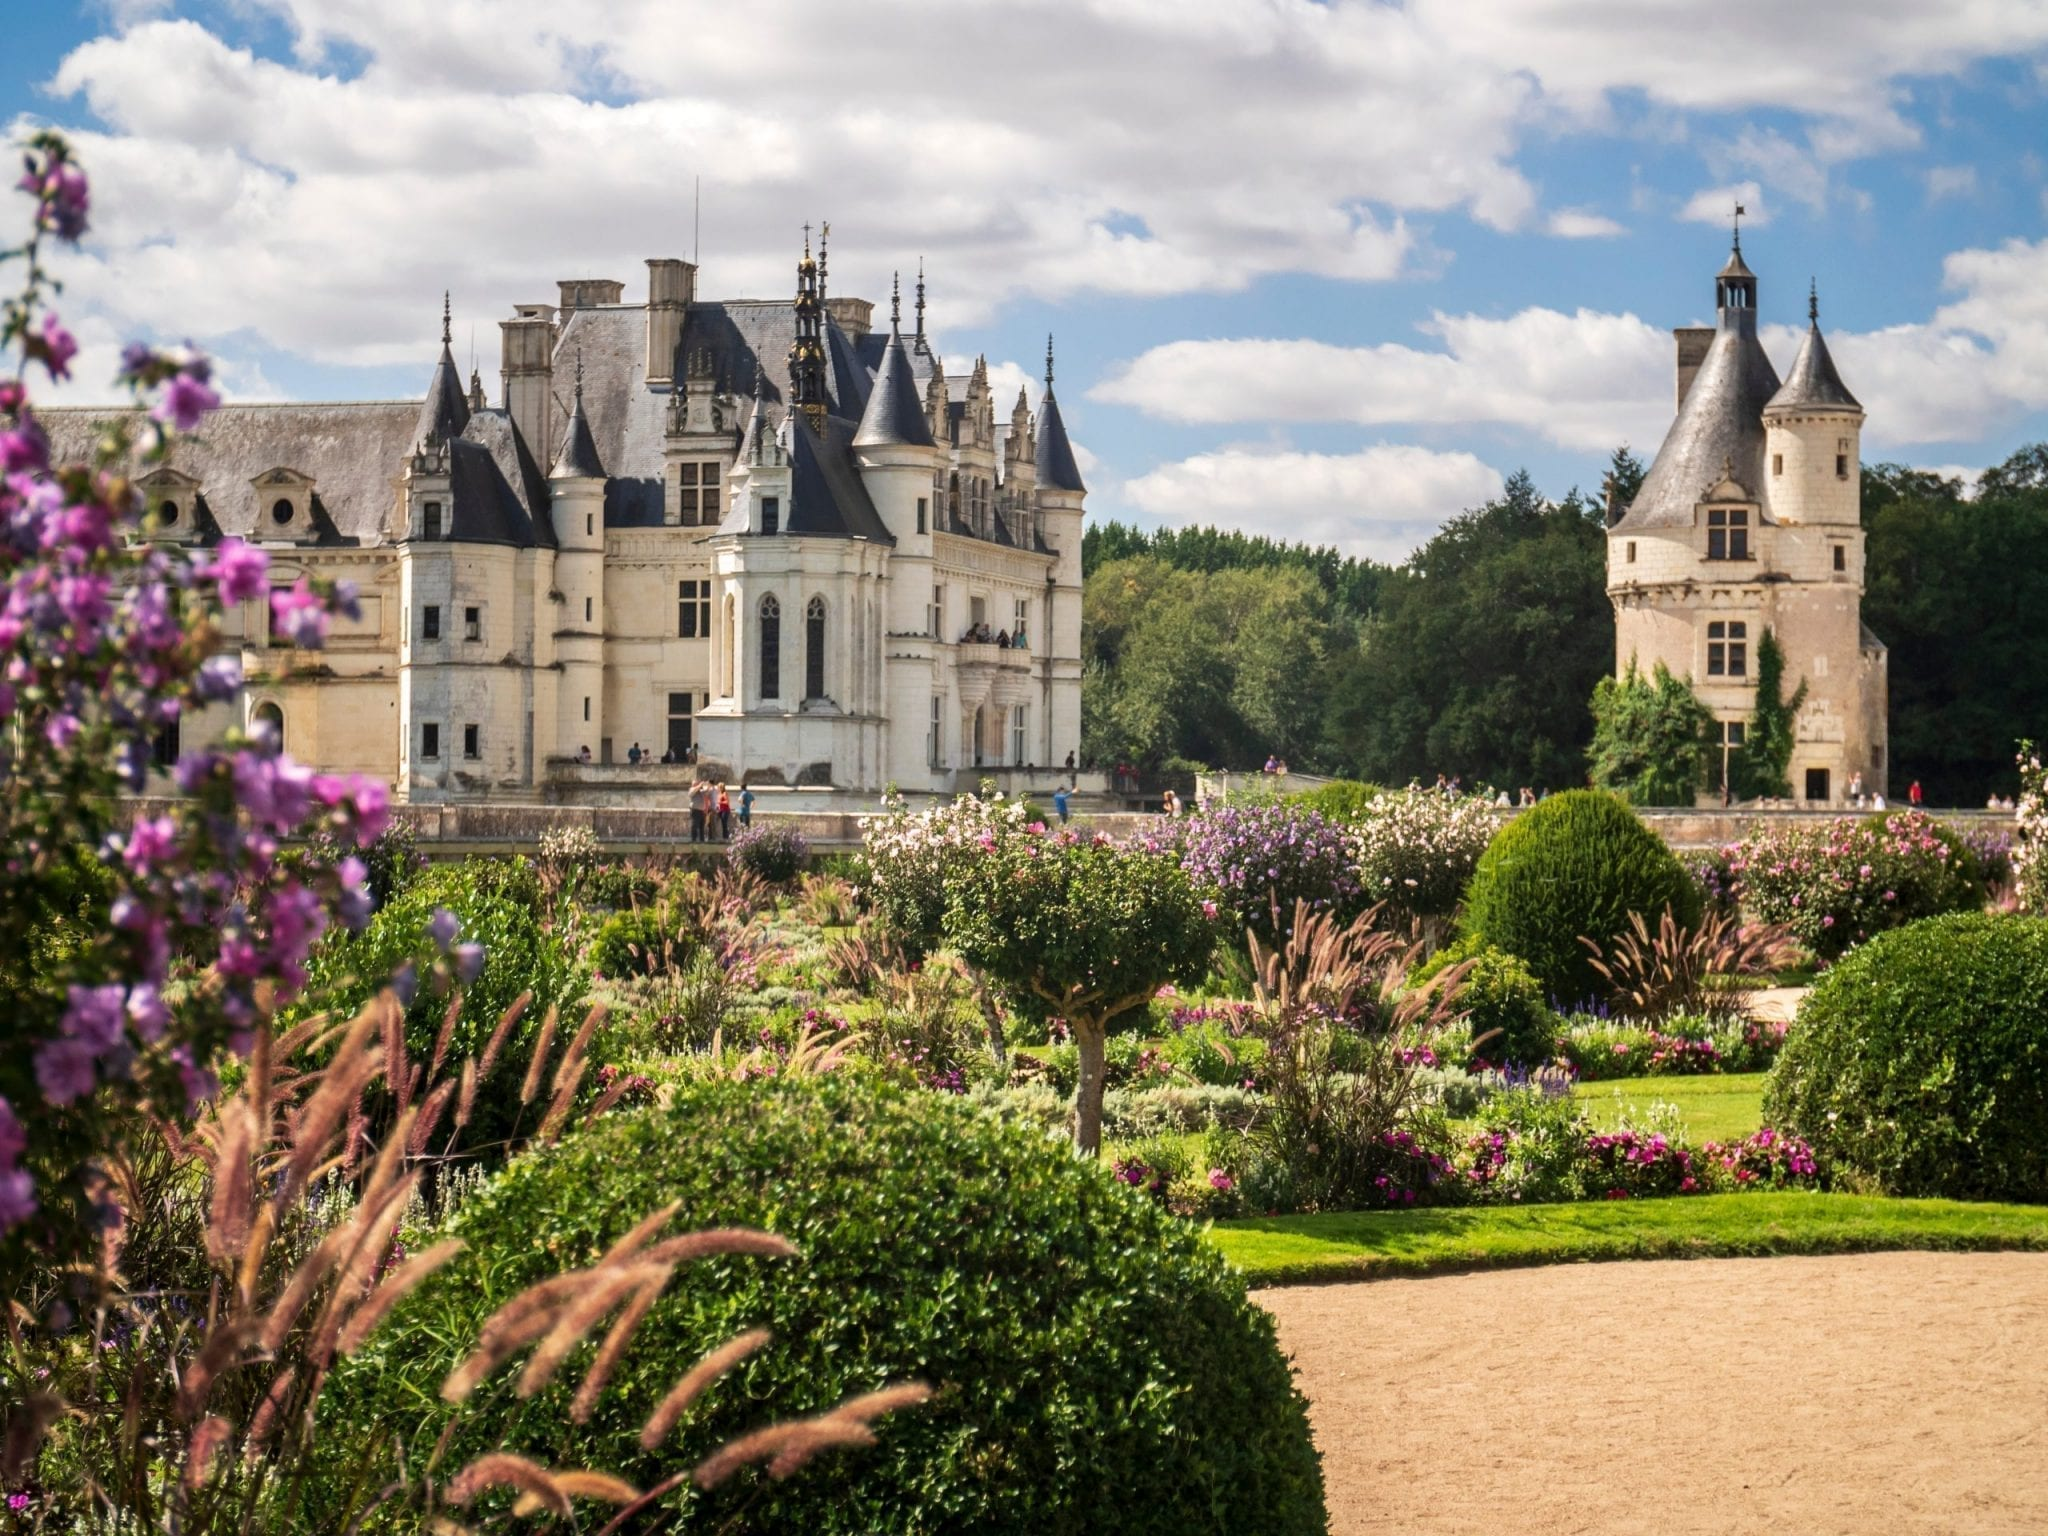 Château Chenonceau as seen from across the garden with pink flowers in the foreground. Château Chenonceau is one of the best day trips from paris france